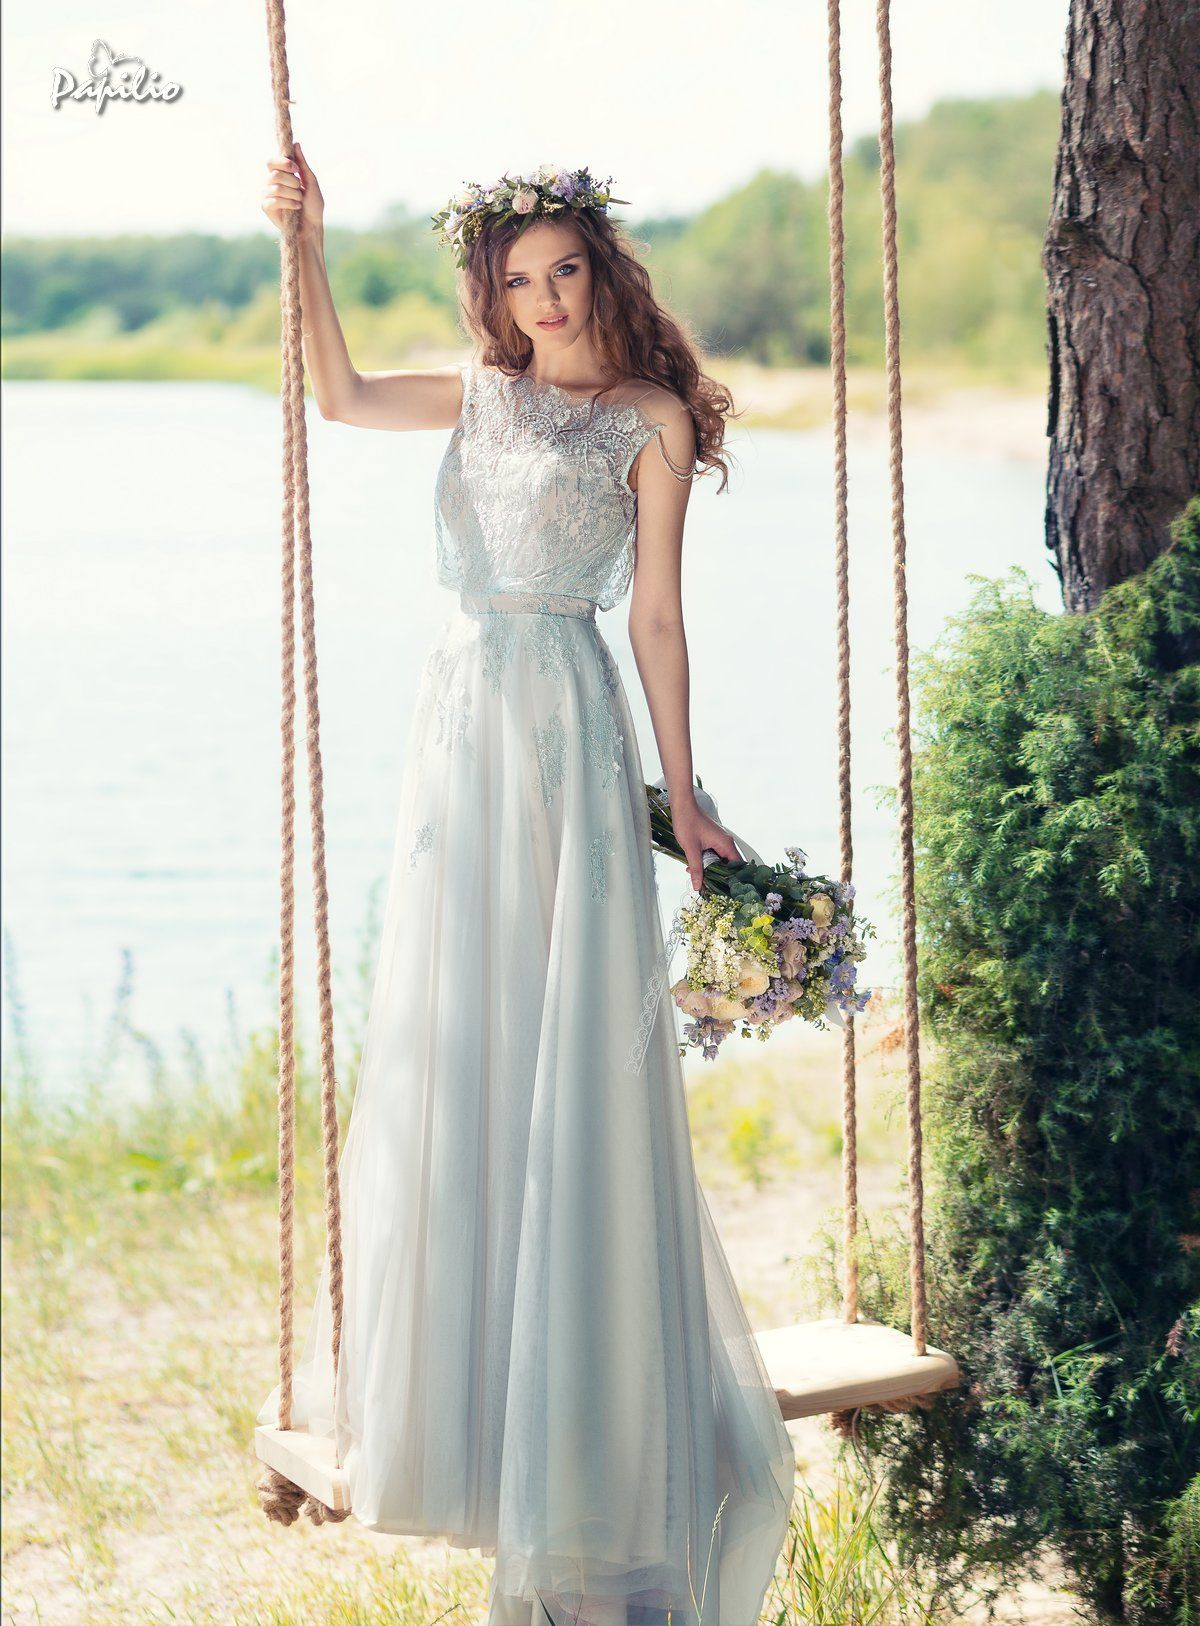 Wings Of Love Boho Wedding Dresses Papilio Boutique In 2020